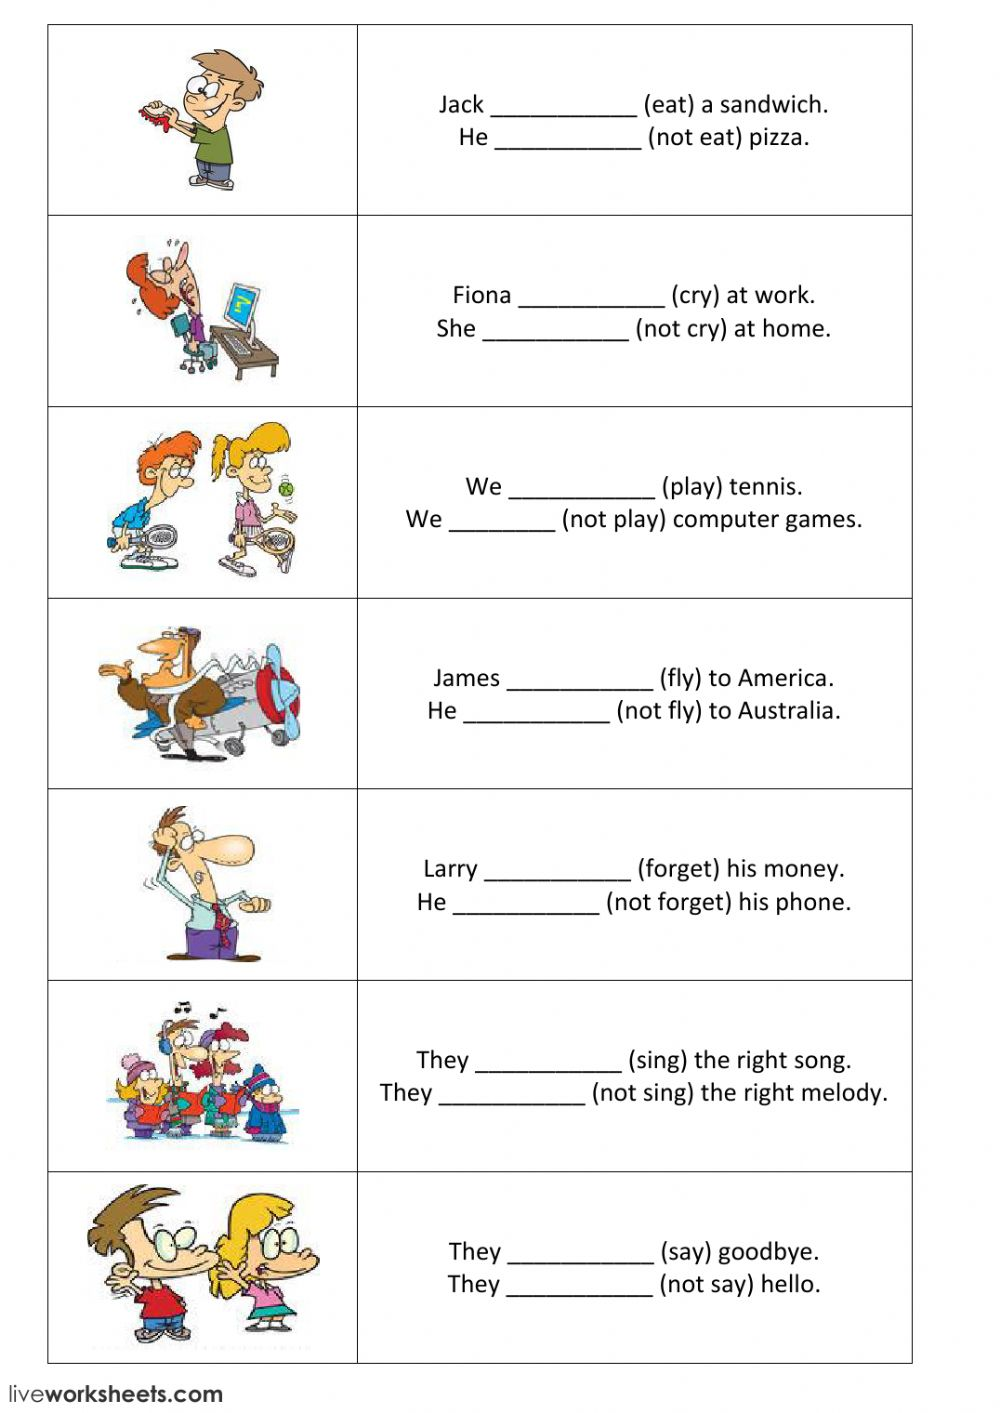 Present simple - positive and negative sentences - part 1 - Interactive worksheet